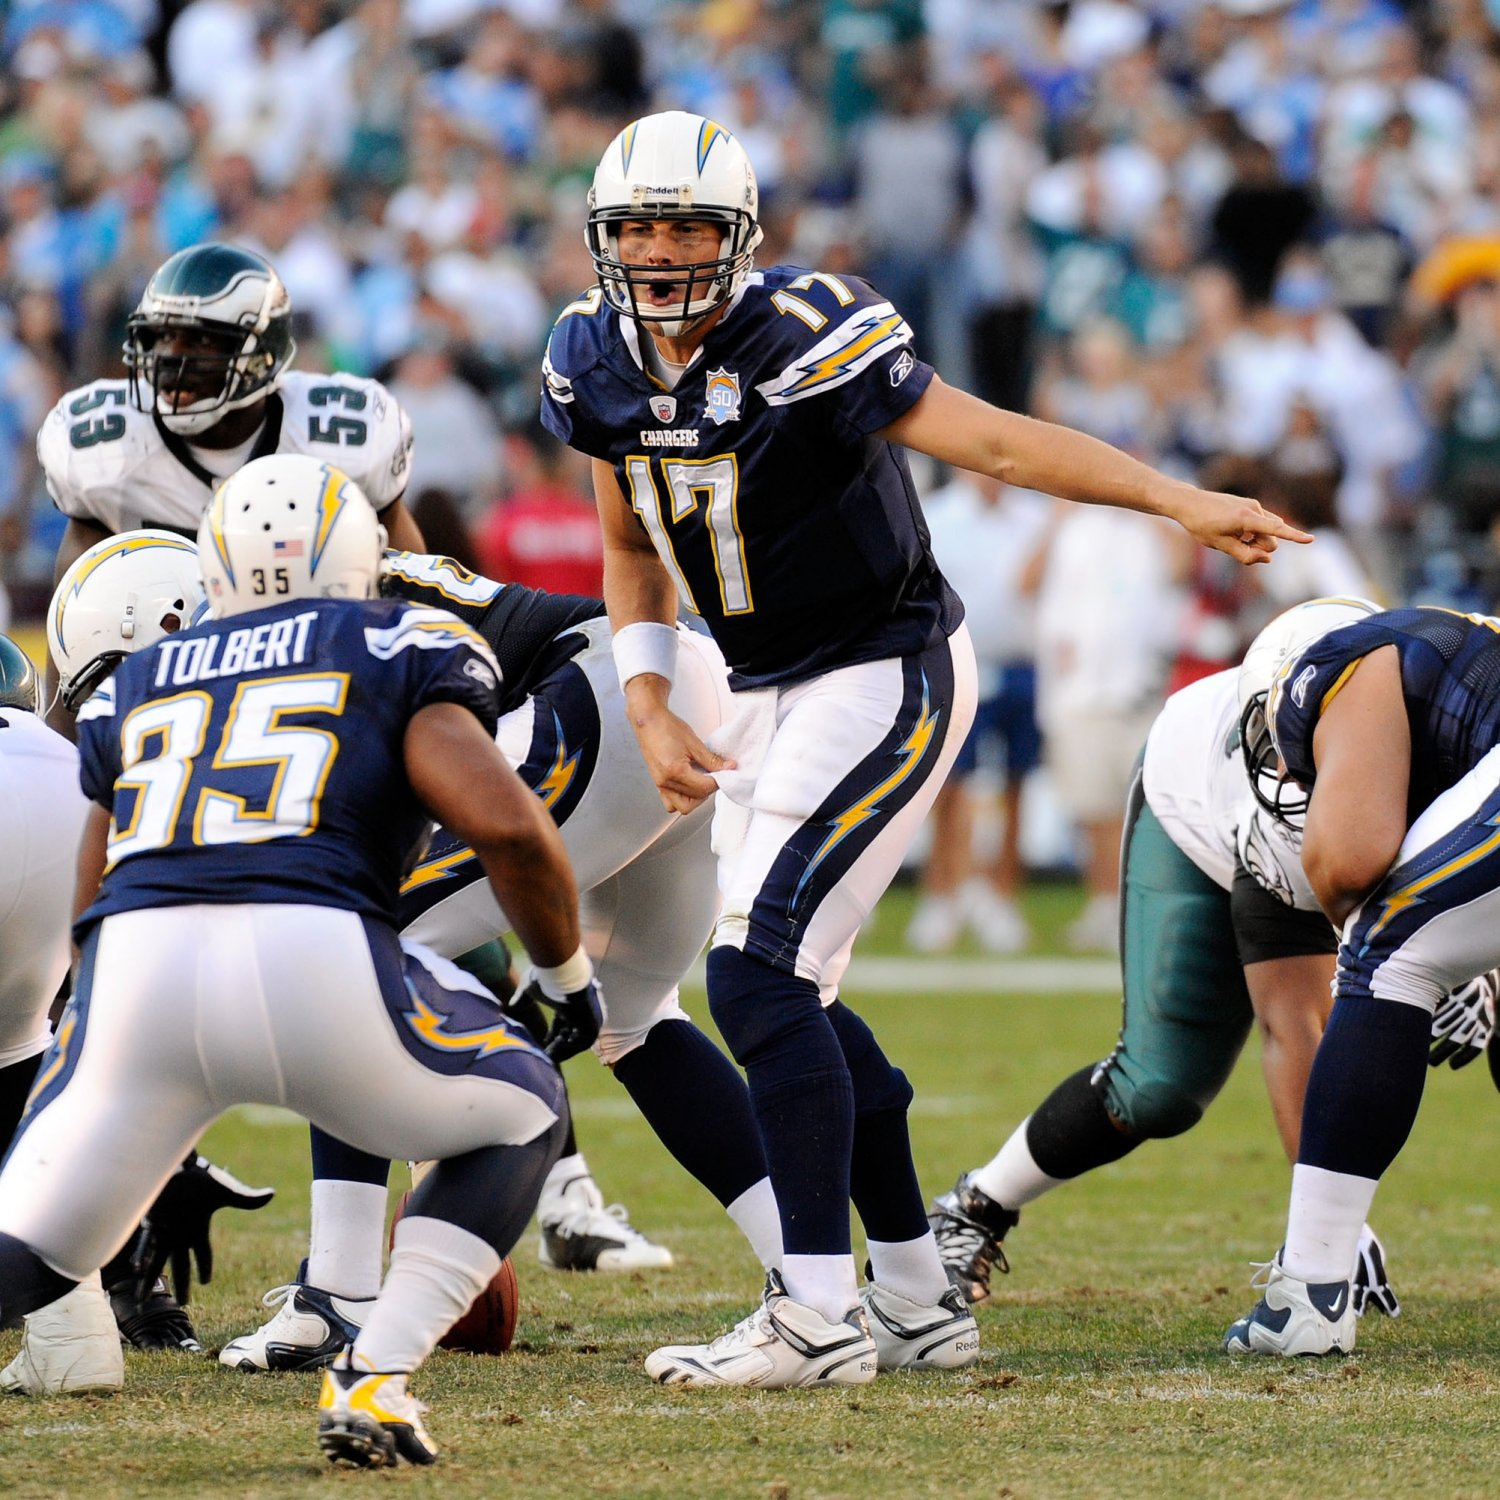 San Diego Chargers Game Time: Chargers Vs. Eagles: TV Info, Spread, Injury Updates, Game